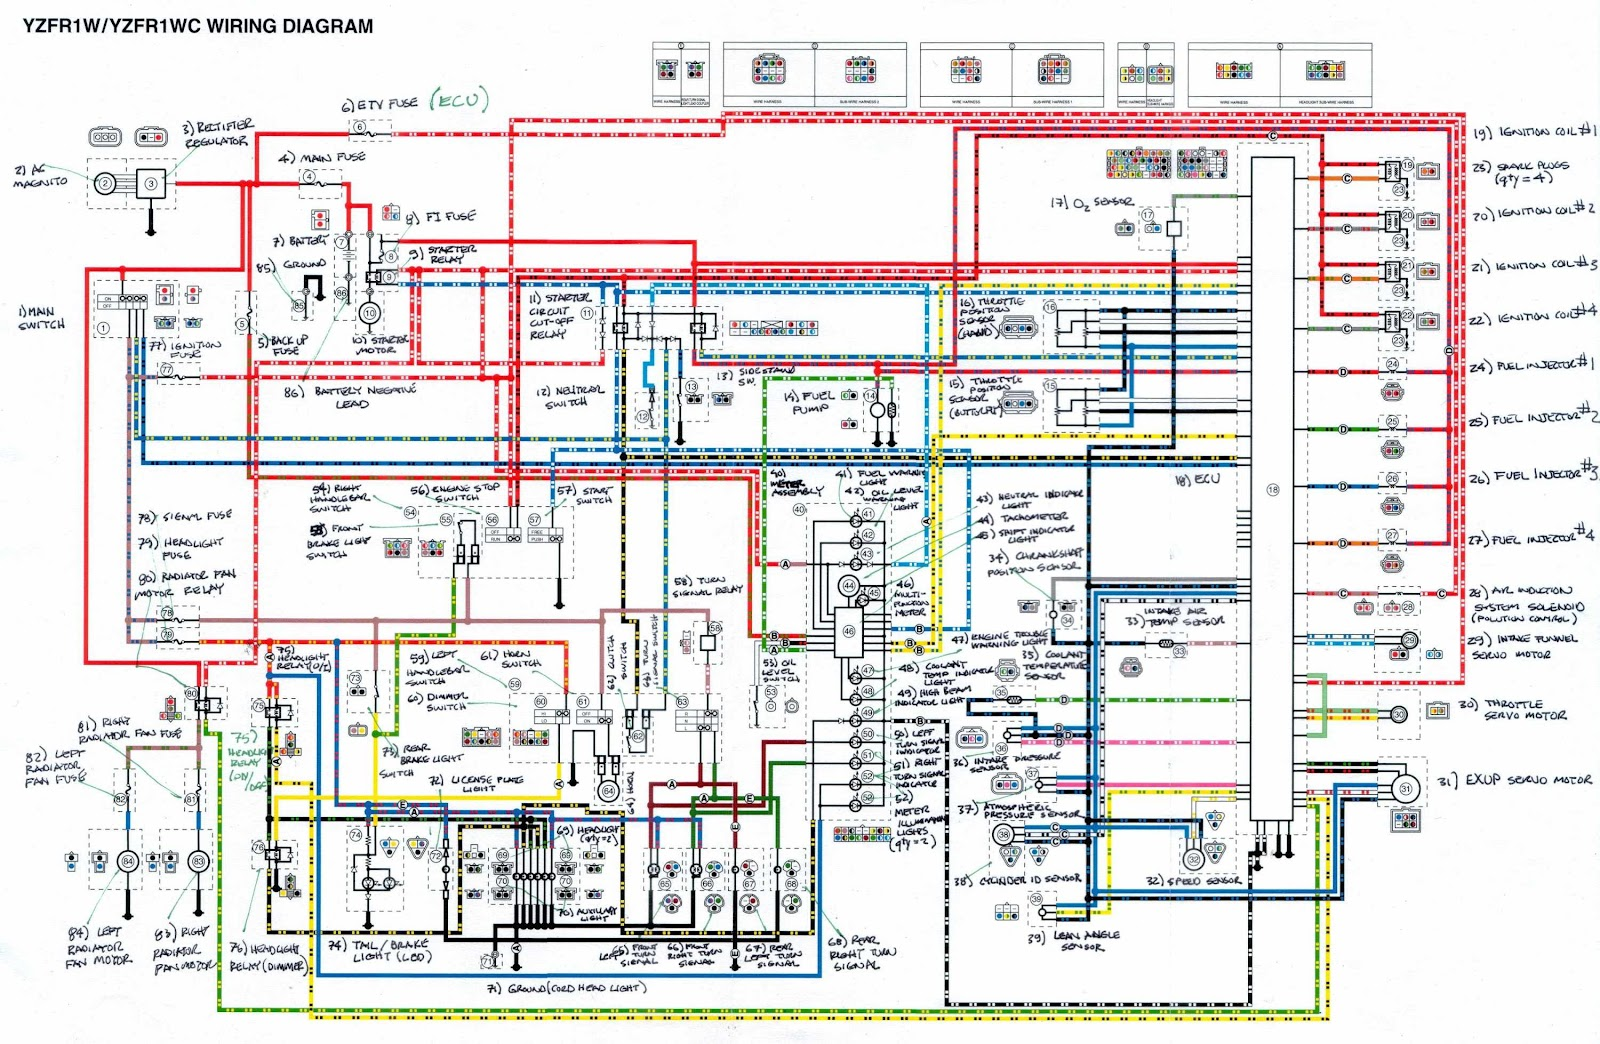 1992 Chevy 1500 Wiring Diagram Another Blog About Yamaha Yzf R1 Motorcycle All Stereo